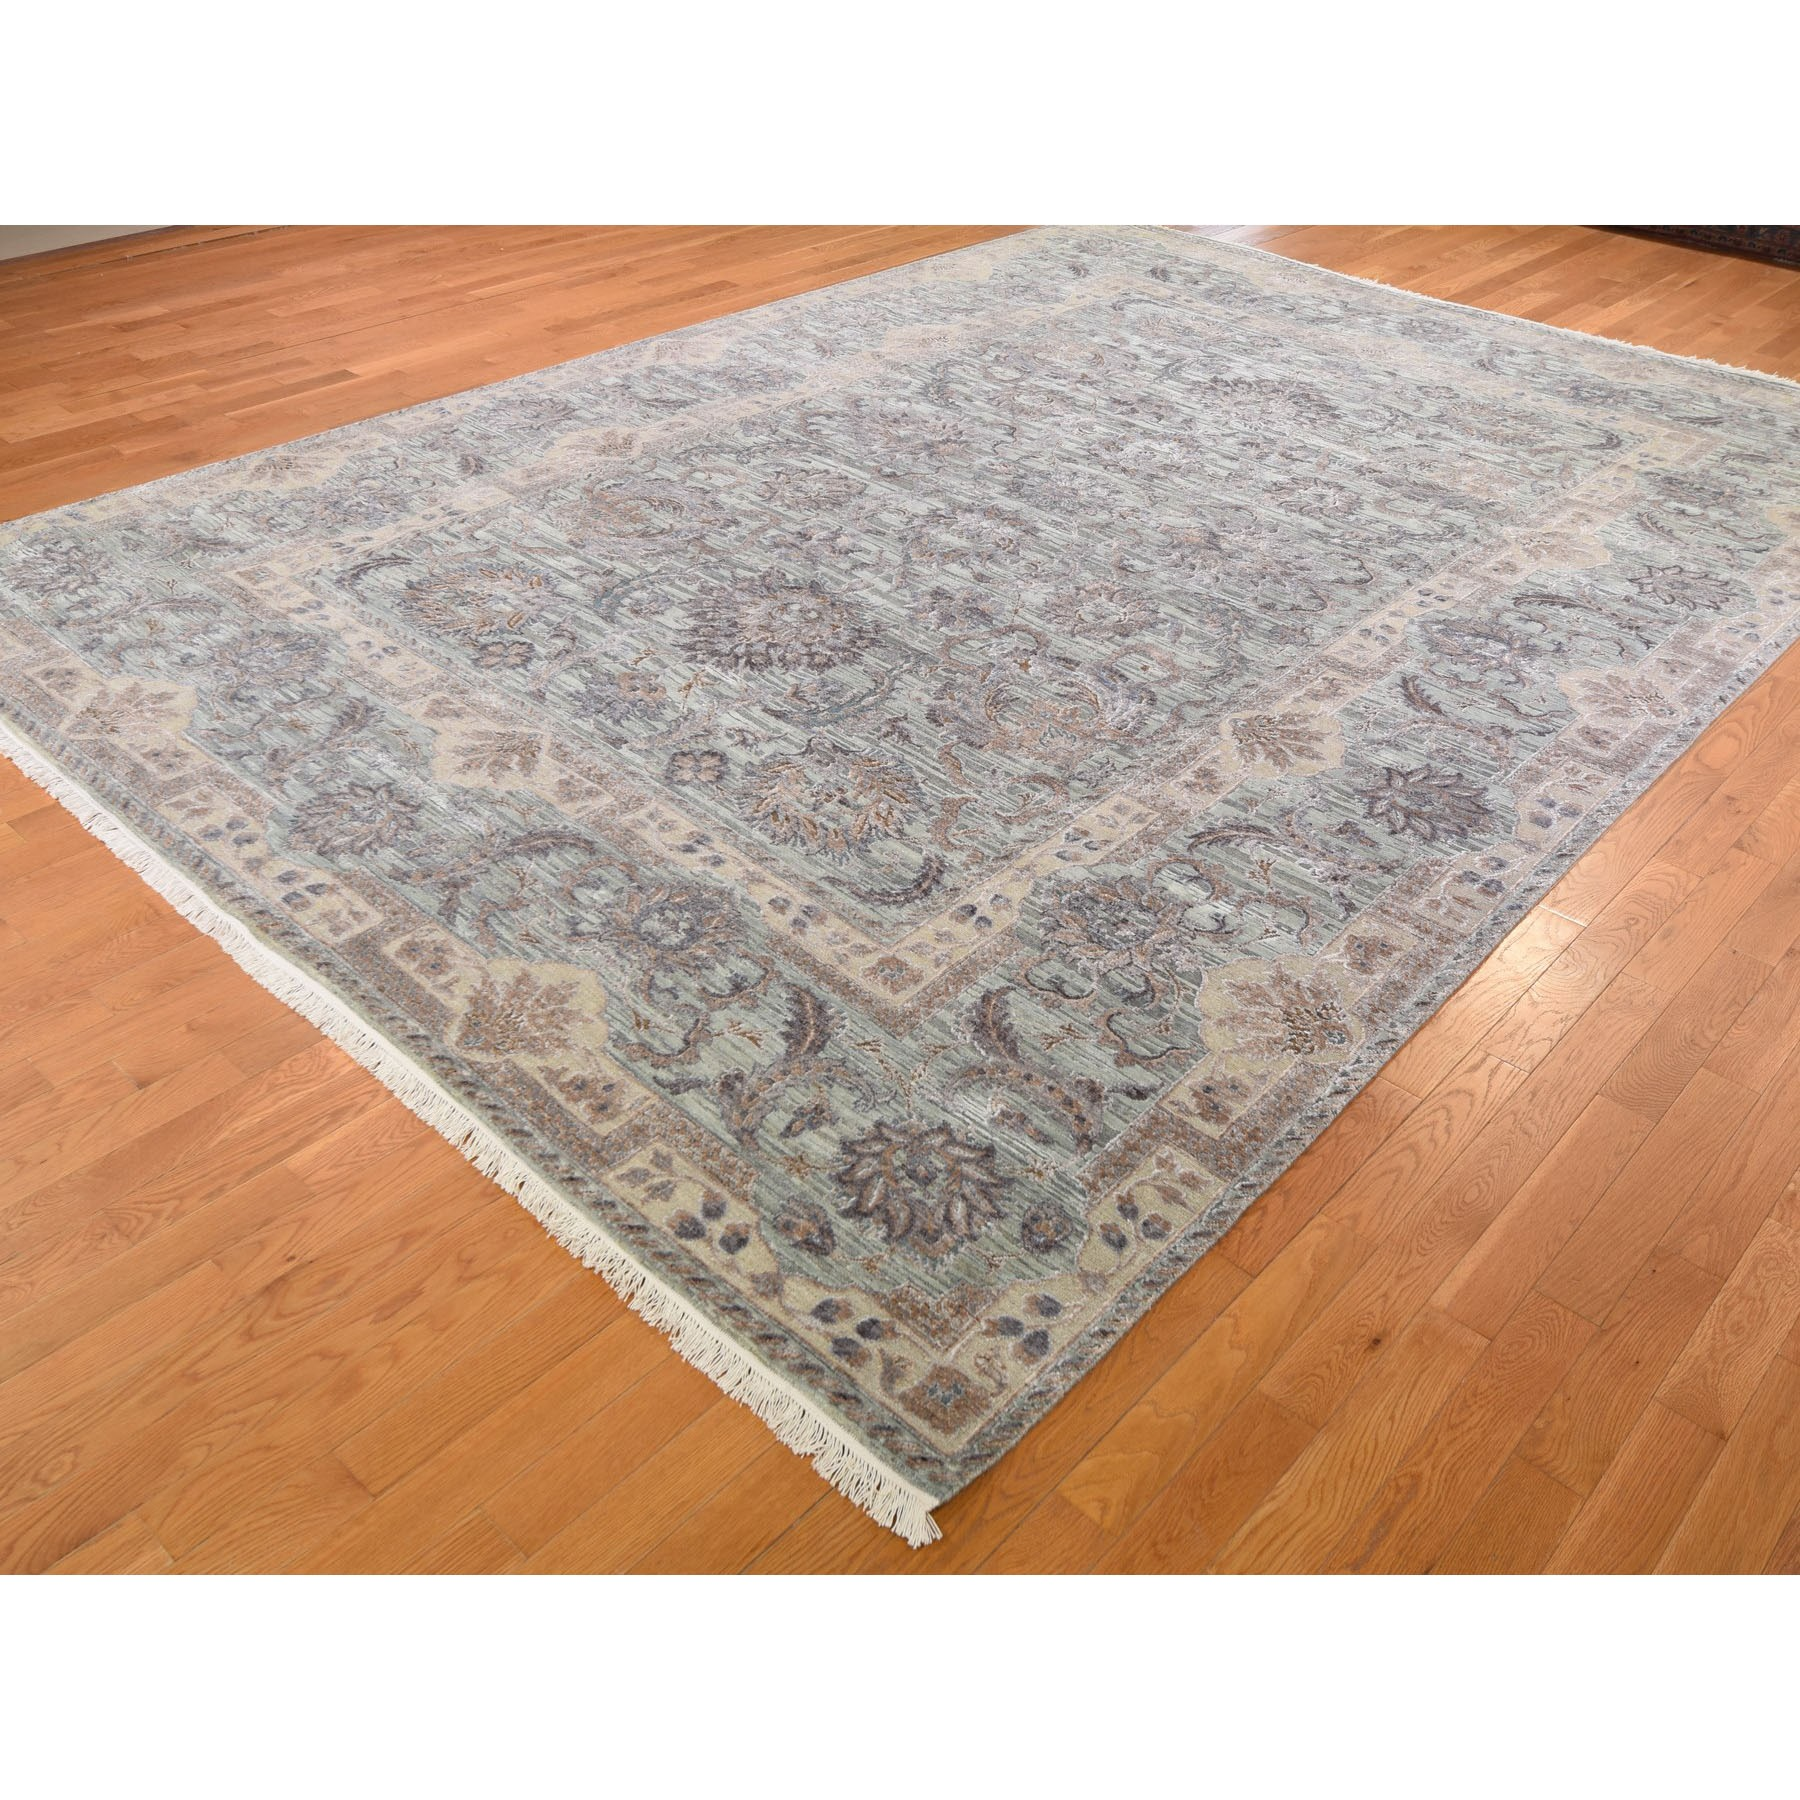 10'x14' Light Green Pure Silk With Textured Wool Mughal Design Hand Knotted Oriental Rug